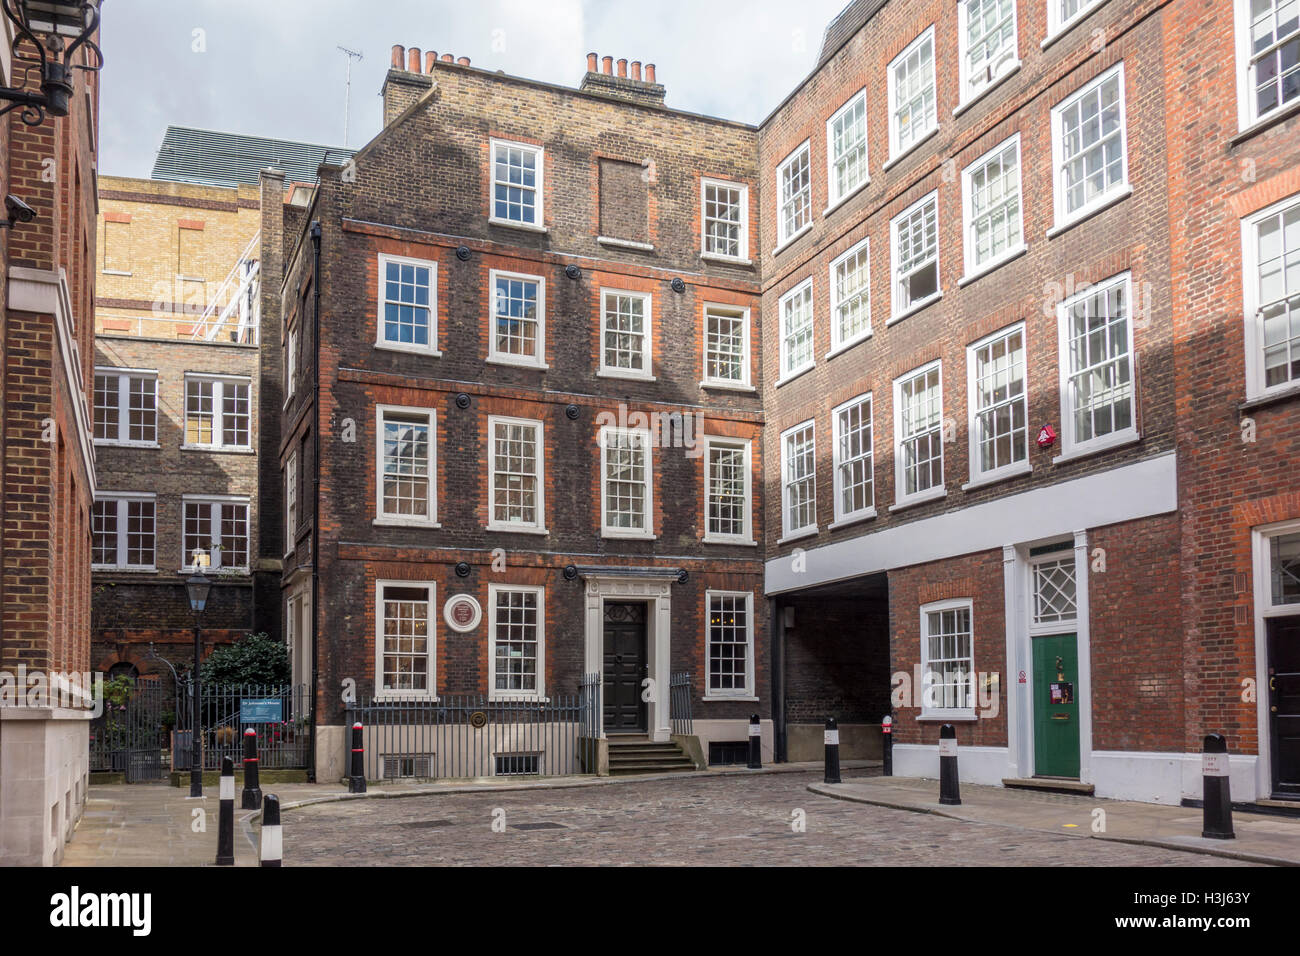 Former home of Dr Samuel Johnson, Gough Square, London, UK - Stock Image